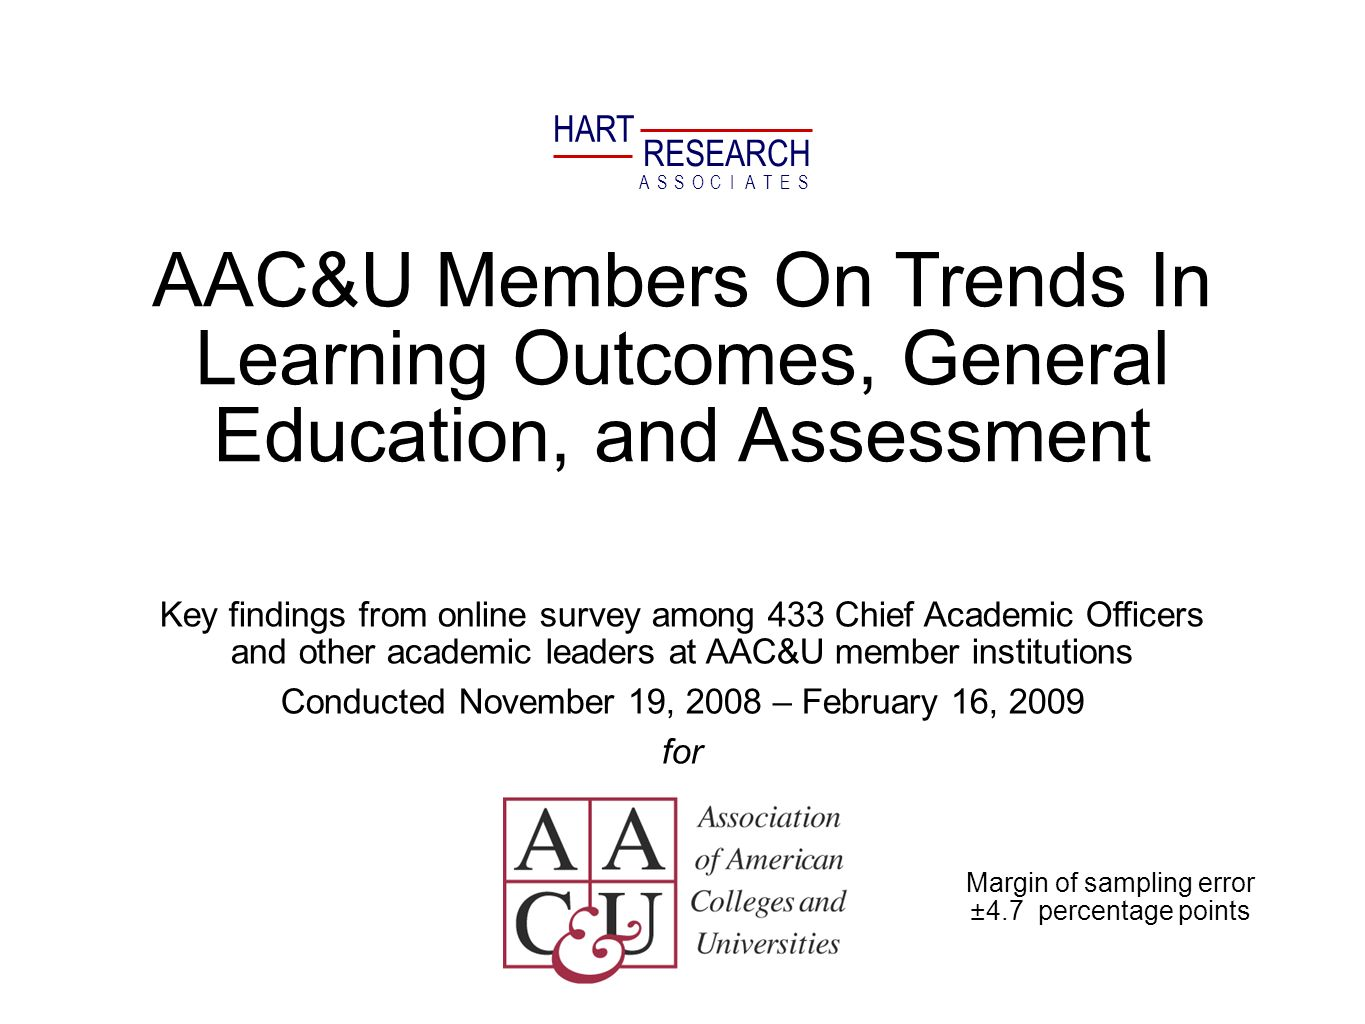 HART RESEARCH. A. S. O. T. E. C. I. AAC&U Members On Trends In Learning Outcomes, General Education, and Assessment.